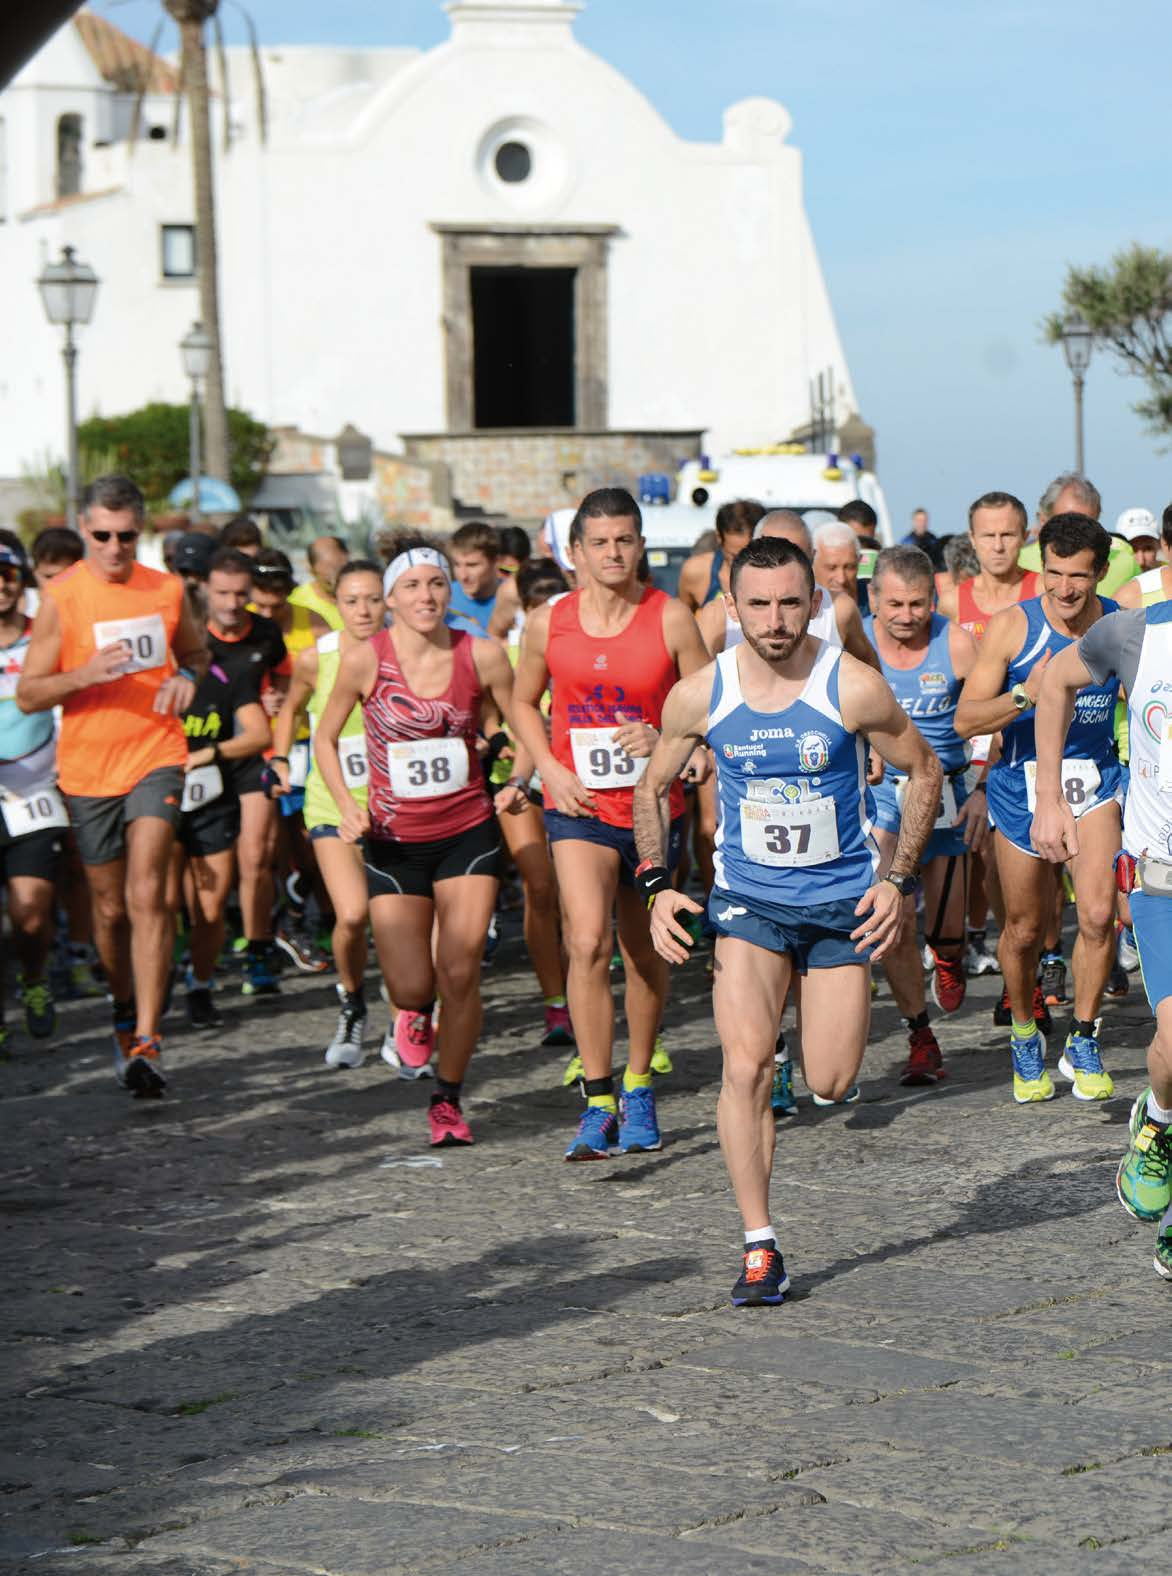 Sunday, October 16th: The race between landscapes and scents - Ischia Dream Run